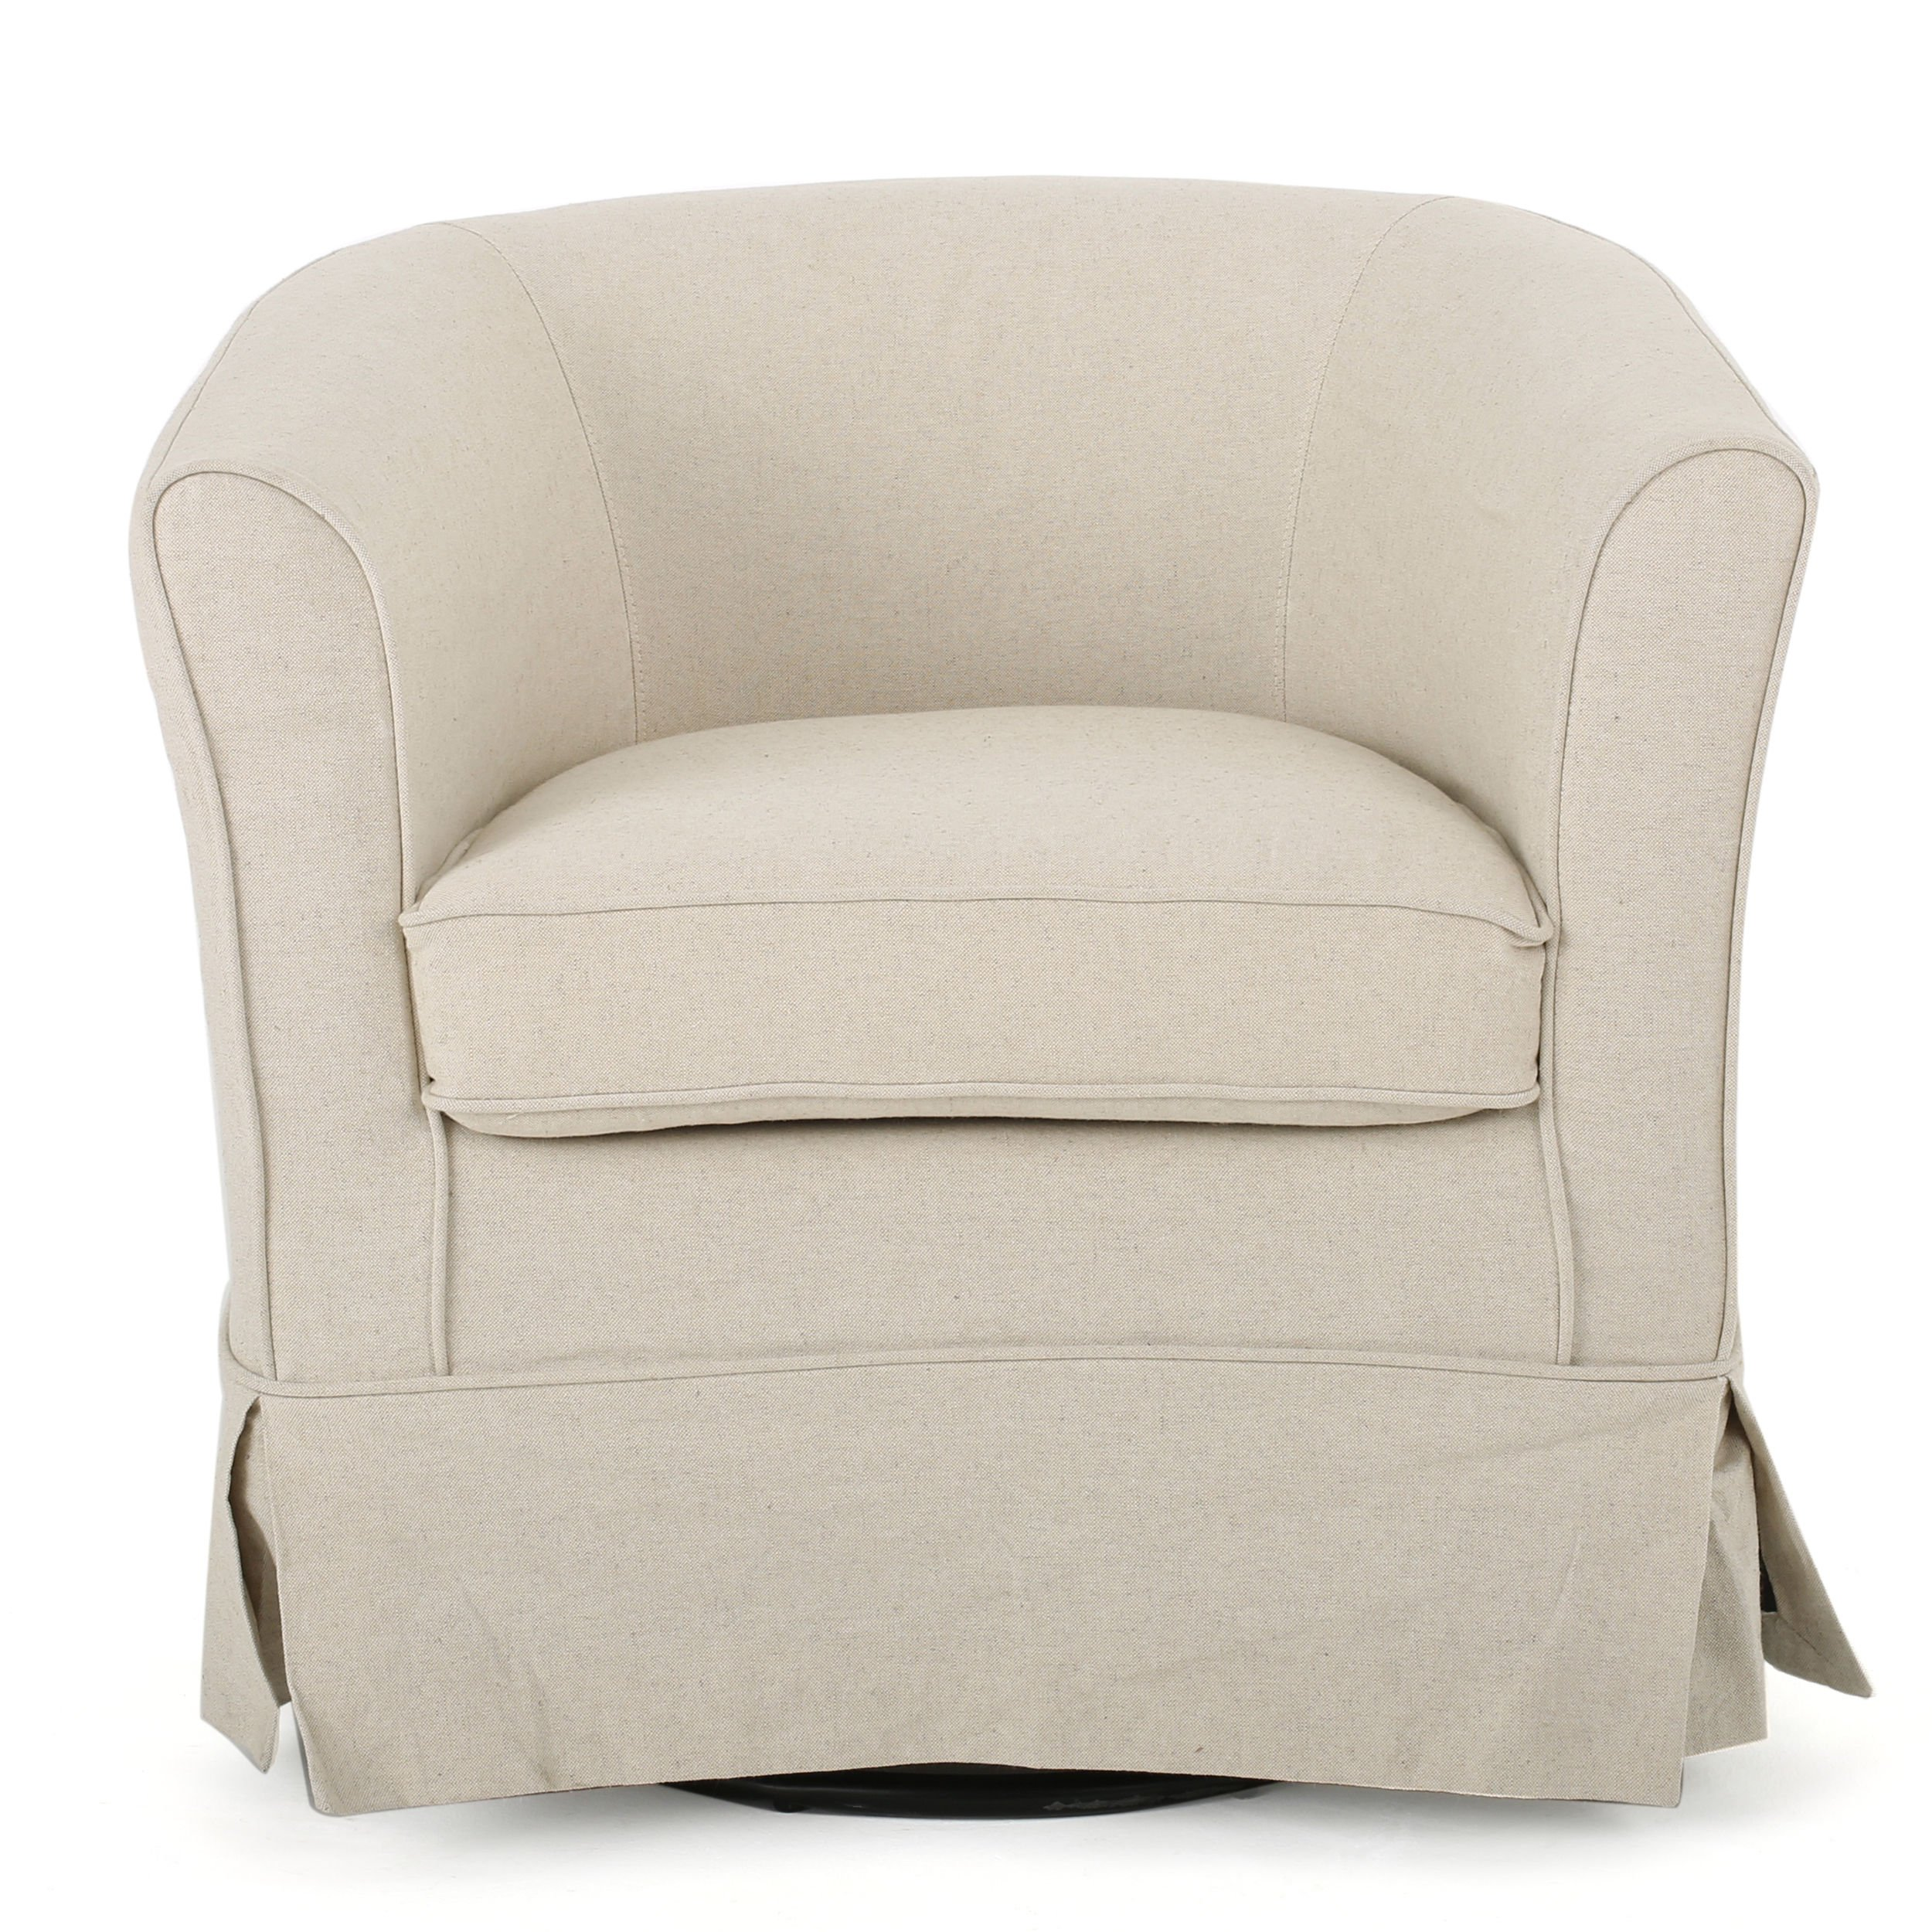 Swivel Club Chair Contemporary Natural Off White Fabric 27.25'' H x 28.75''W x 27.50''D